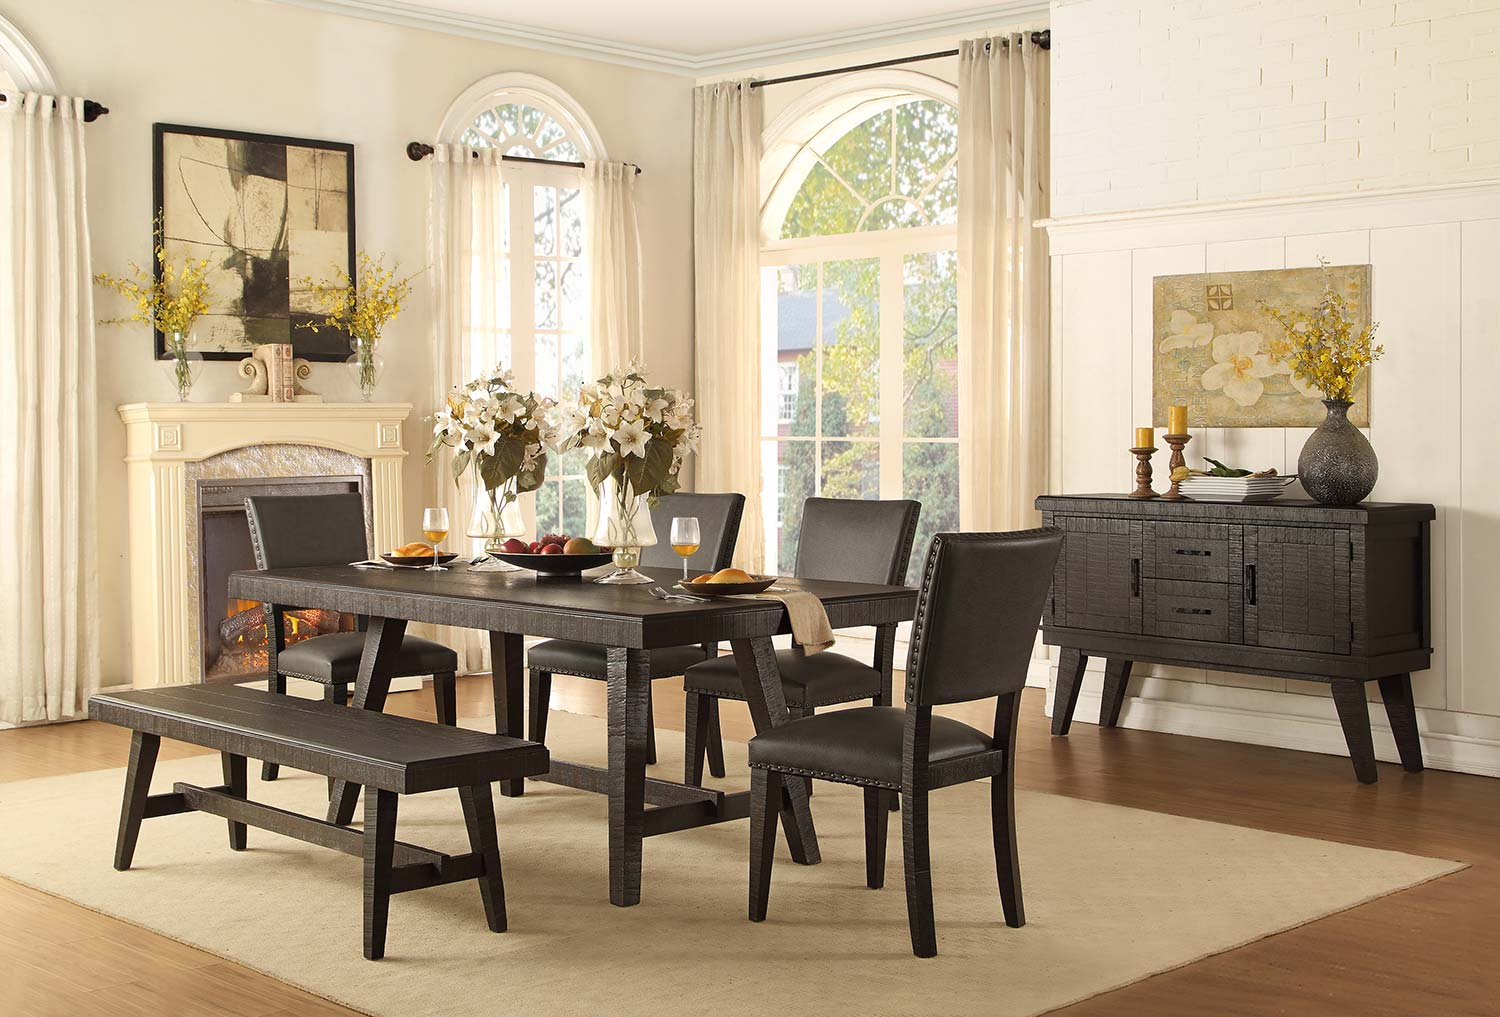 Homelegance Fenwick Rectangular Dining Set - Dark Gray